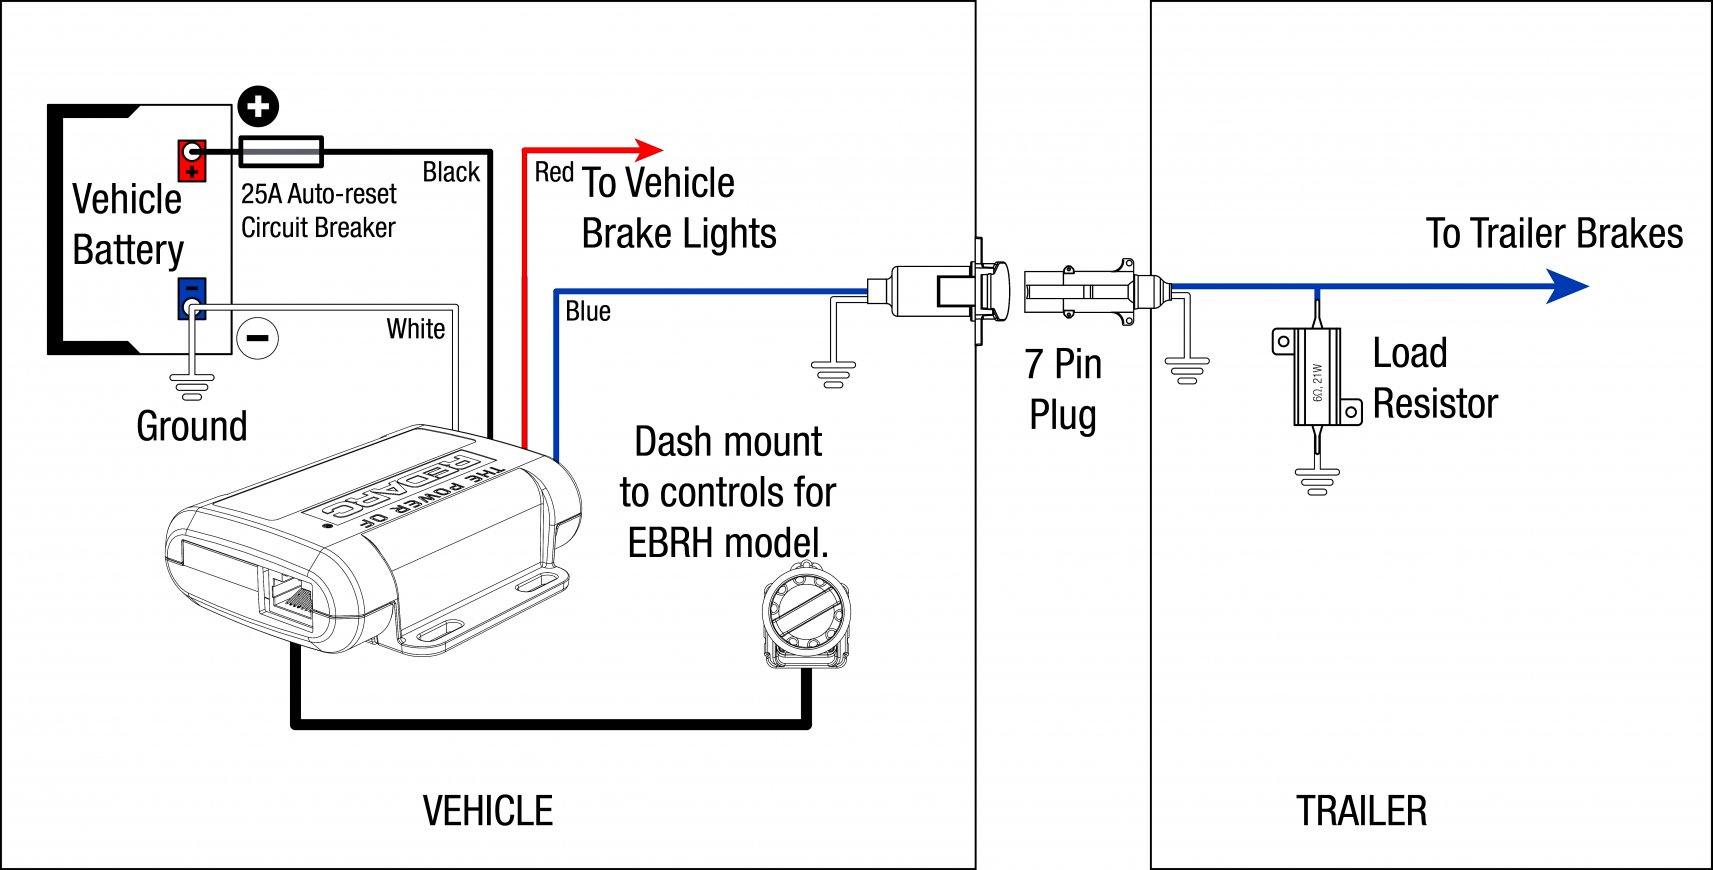 Ke Breakaway Wiring Diagram | Manual E-Books - Trailer Brake Breakaway Wiring Diagram